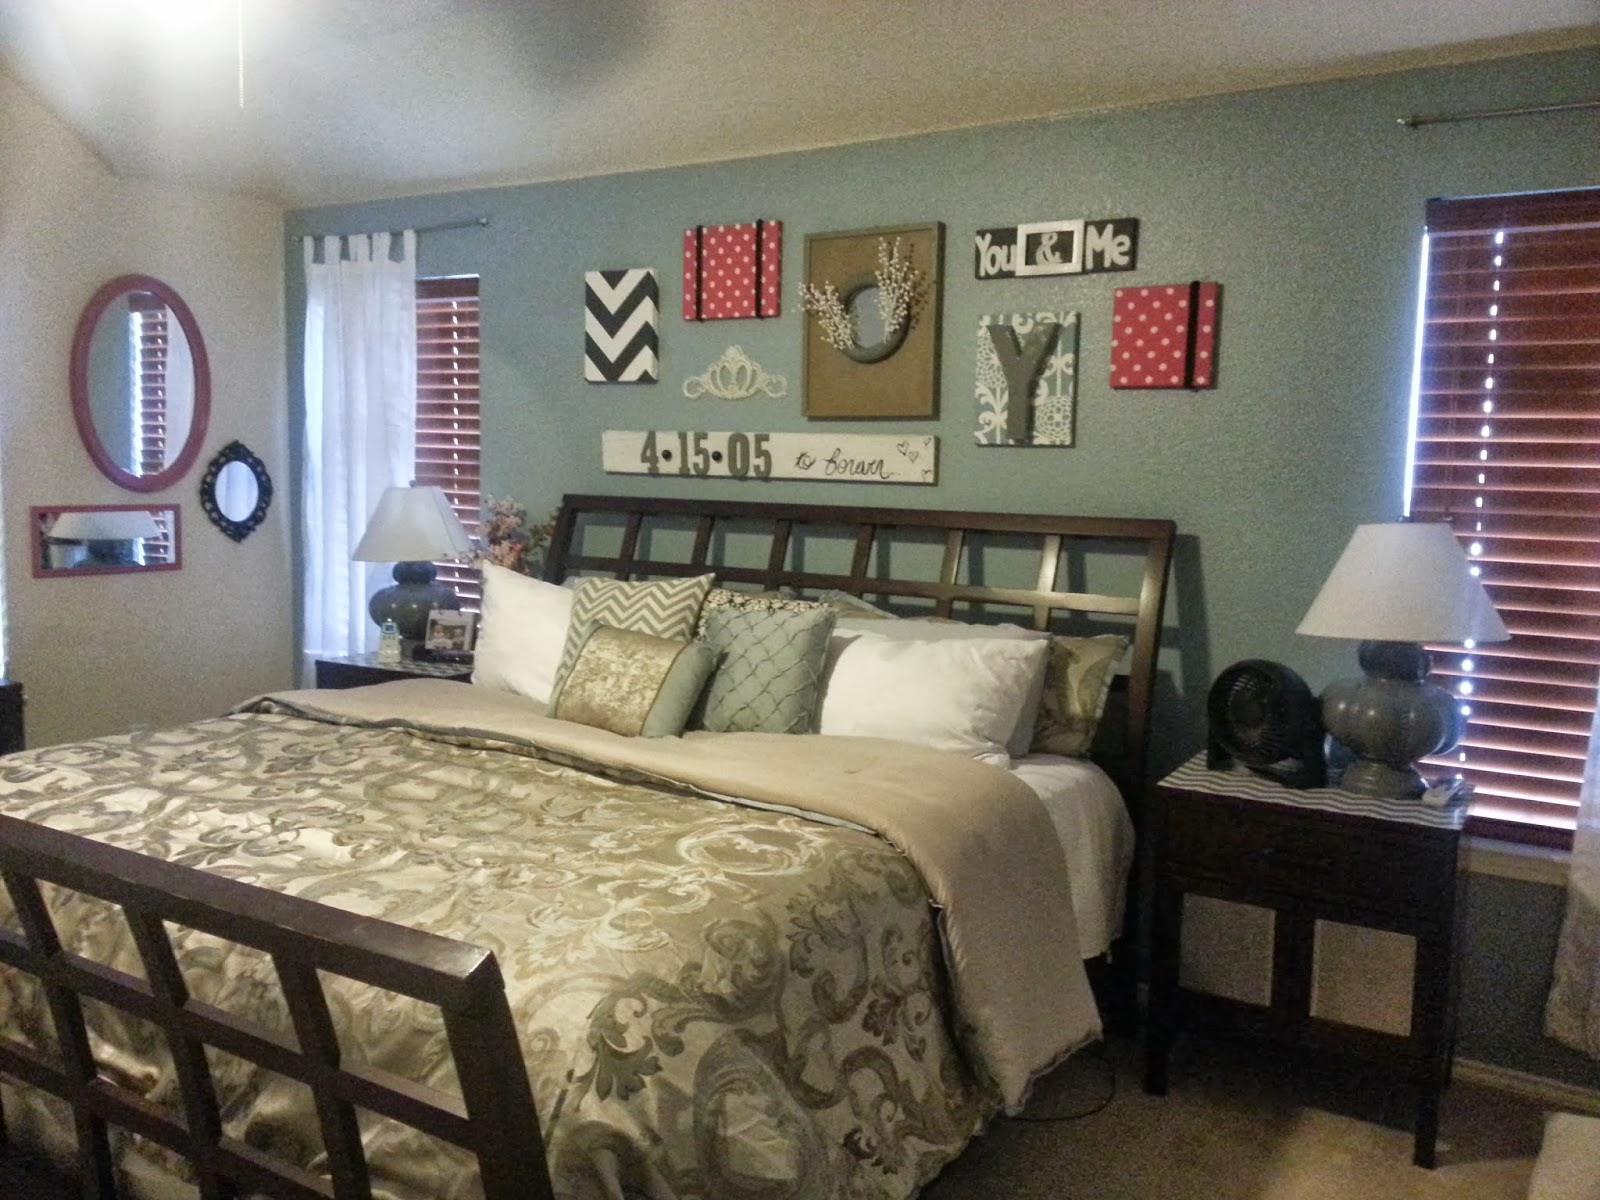 DIY Master Bedroom Decor Update